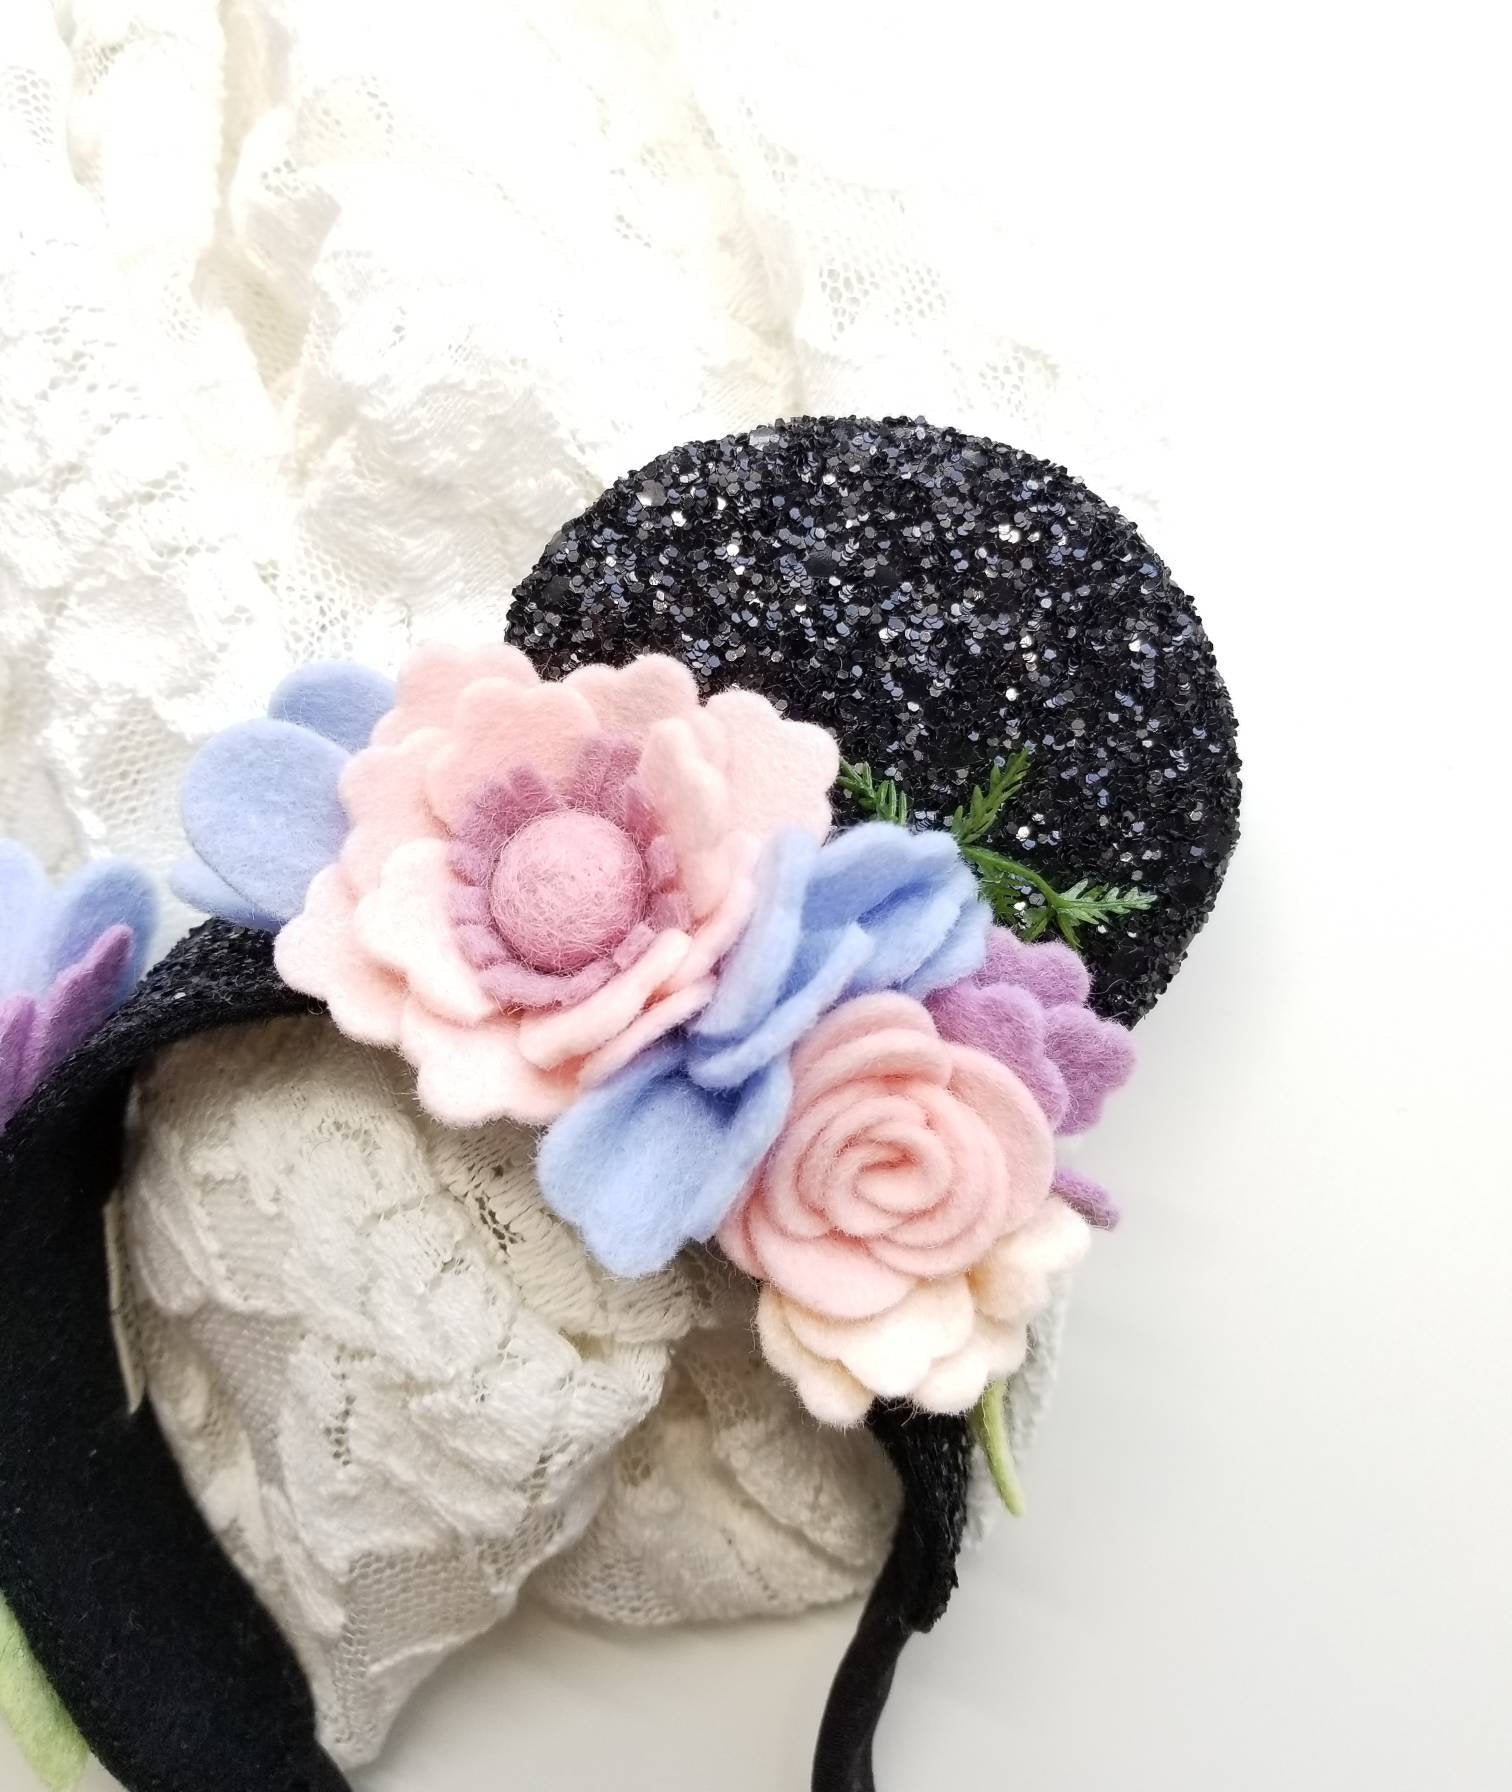 Mouse Ears floral Crown, Soft Base, floral mouse ears, baby headbands, black ears, sparkly faux leather, handmade wool felt flowers